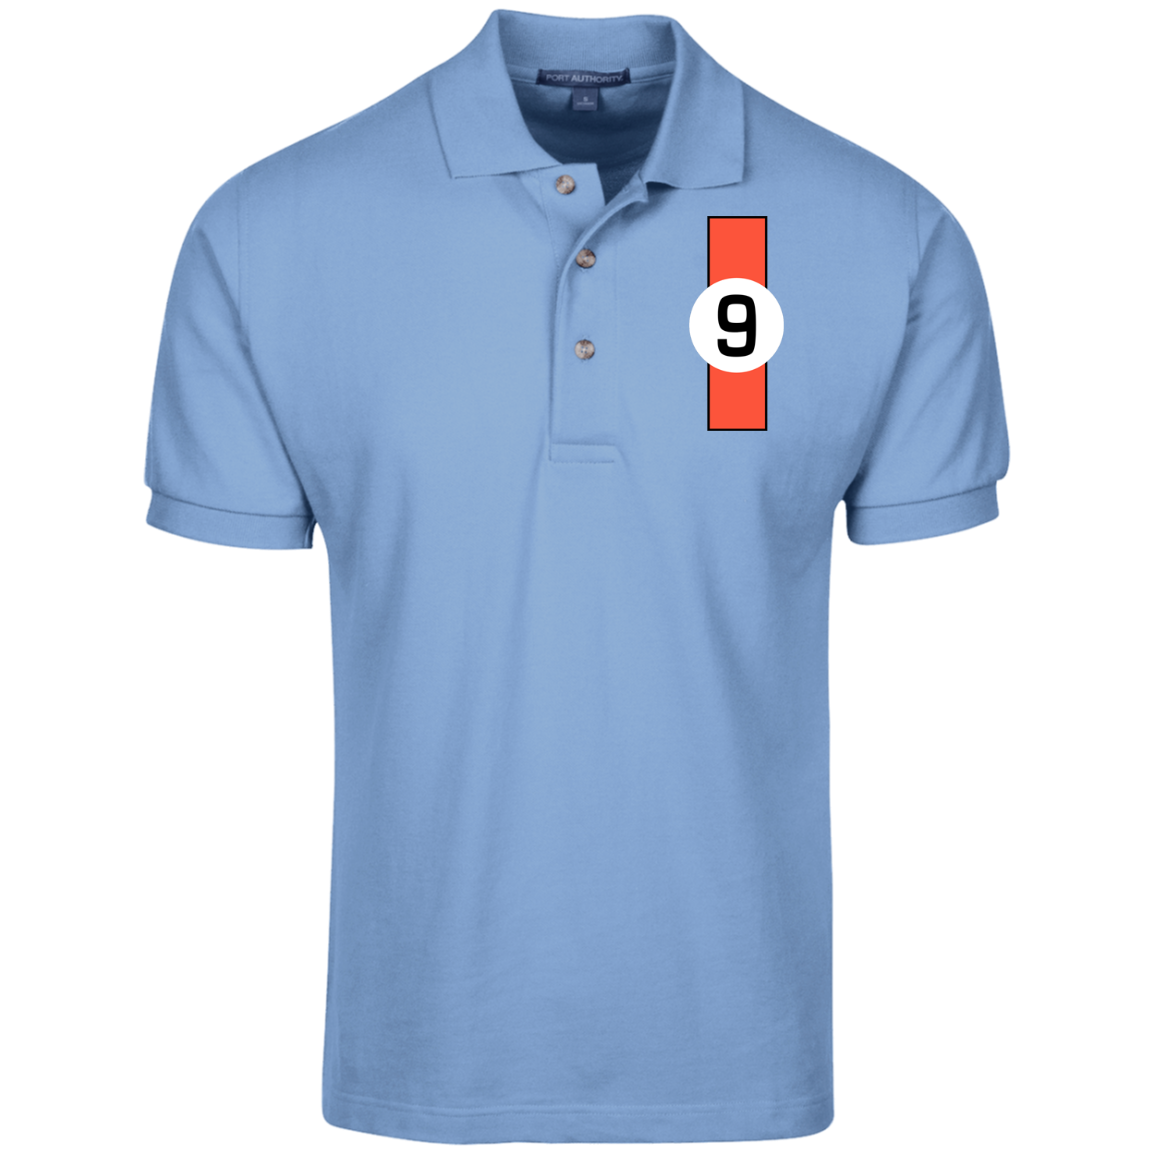 gt40 ford 1968 le mans winner inspired design polo shirt gulf colours